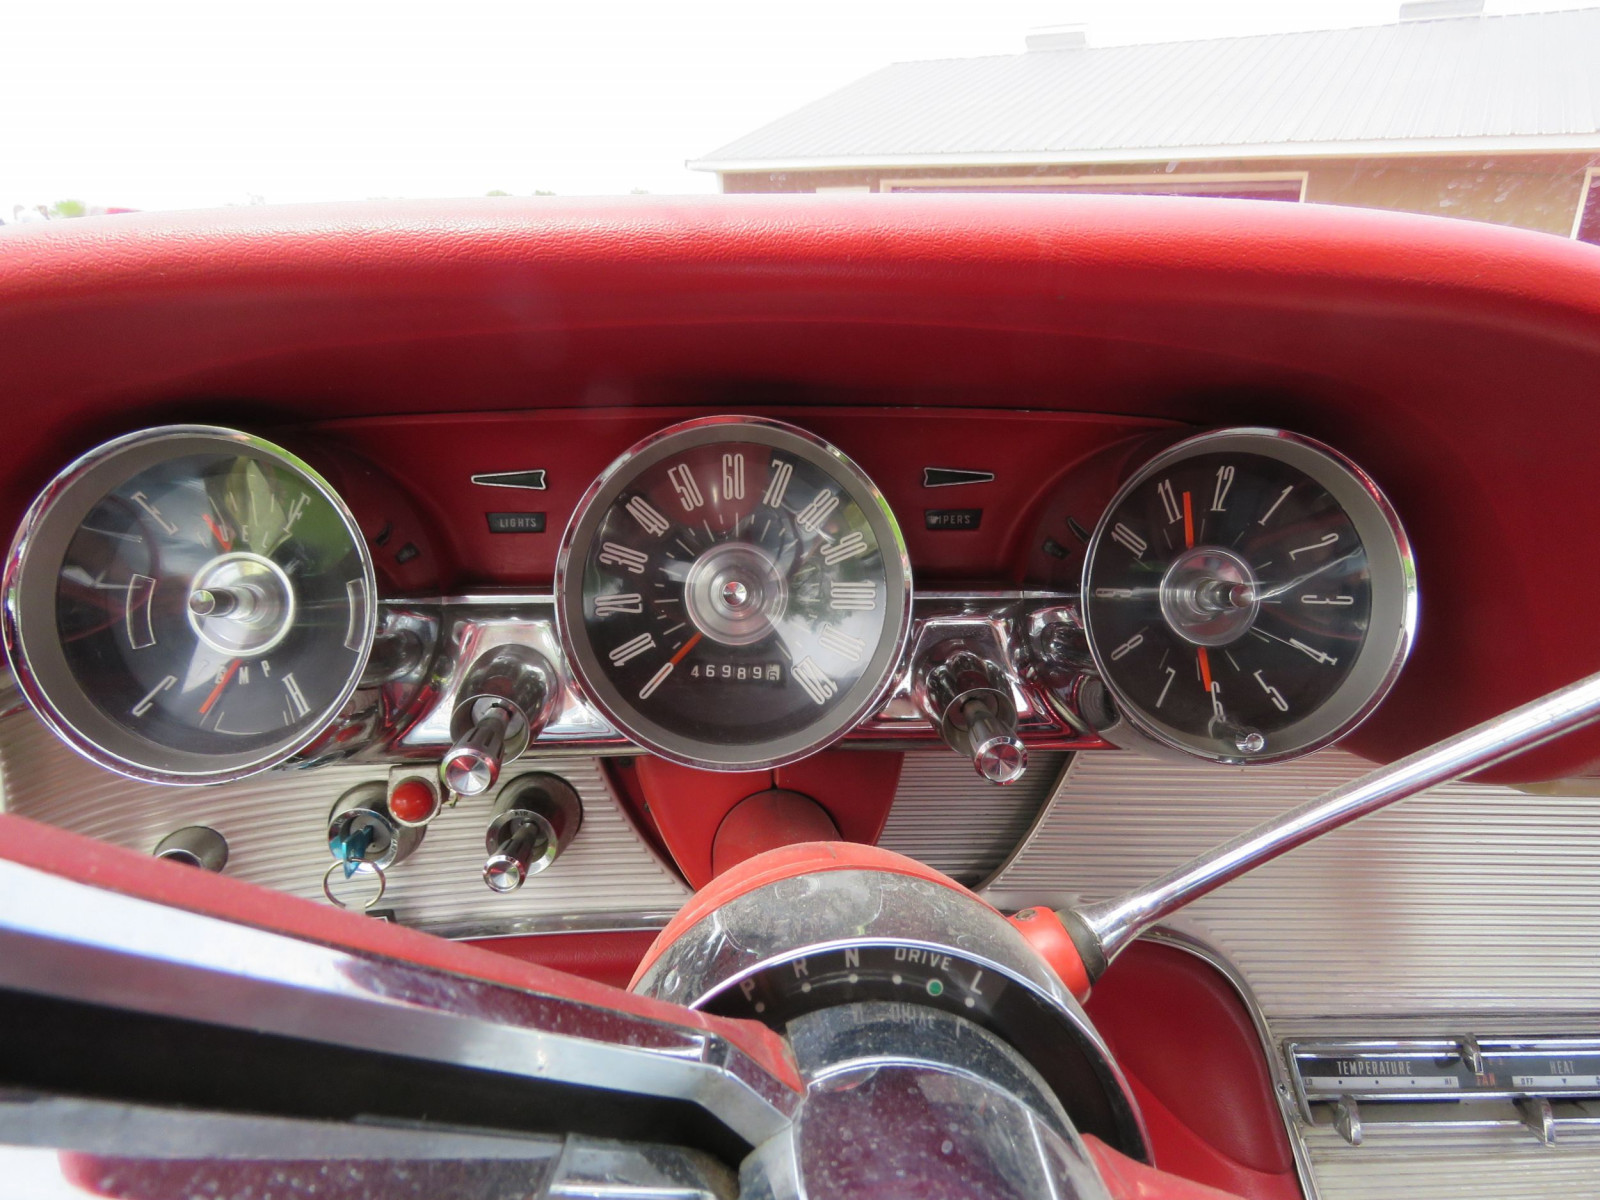 1962 Ford Thunderbird Convertible - Image 9